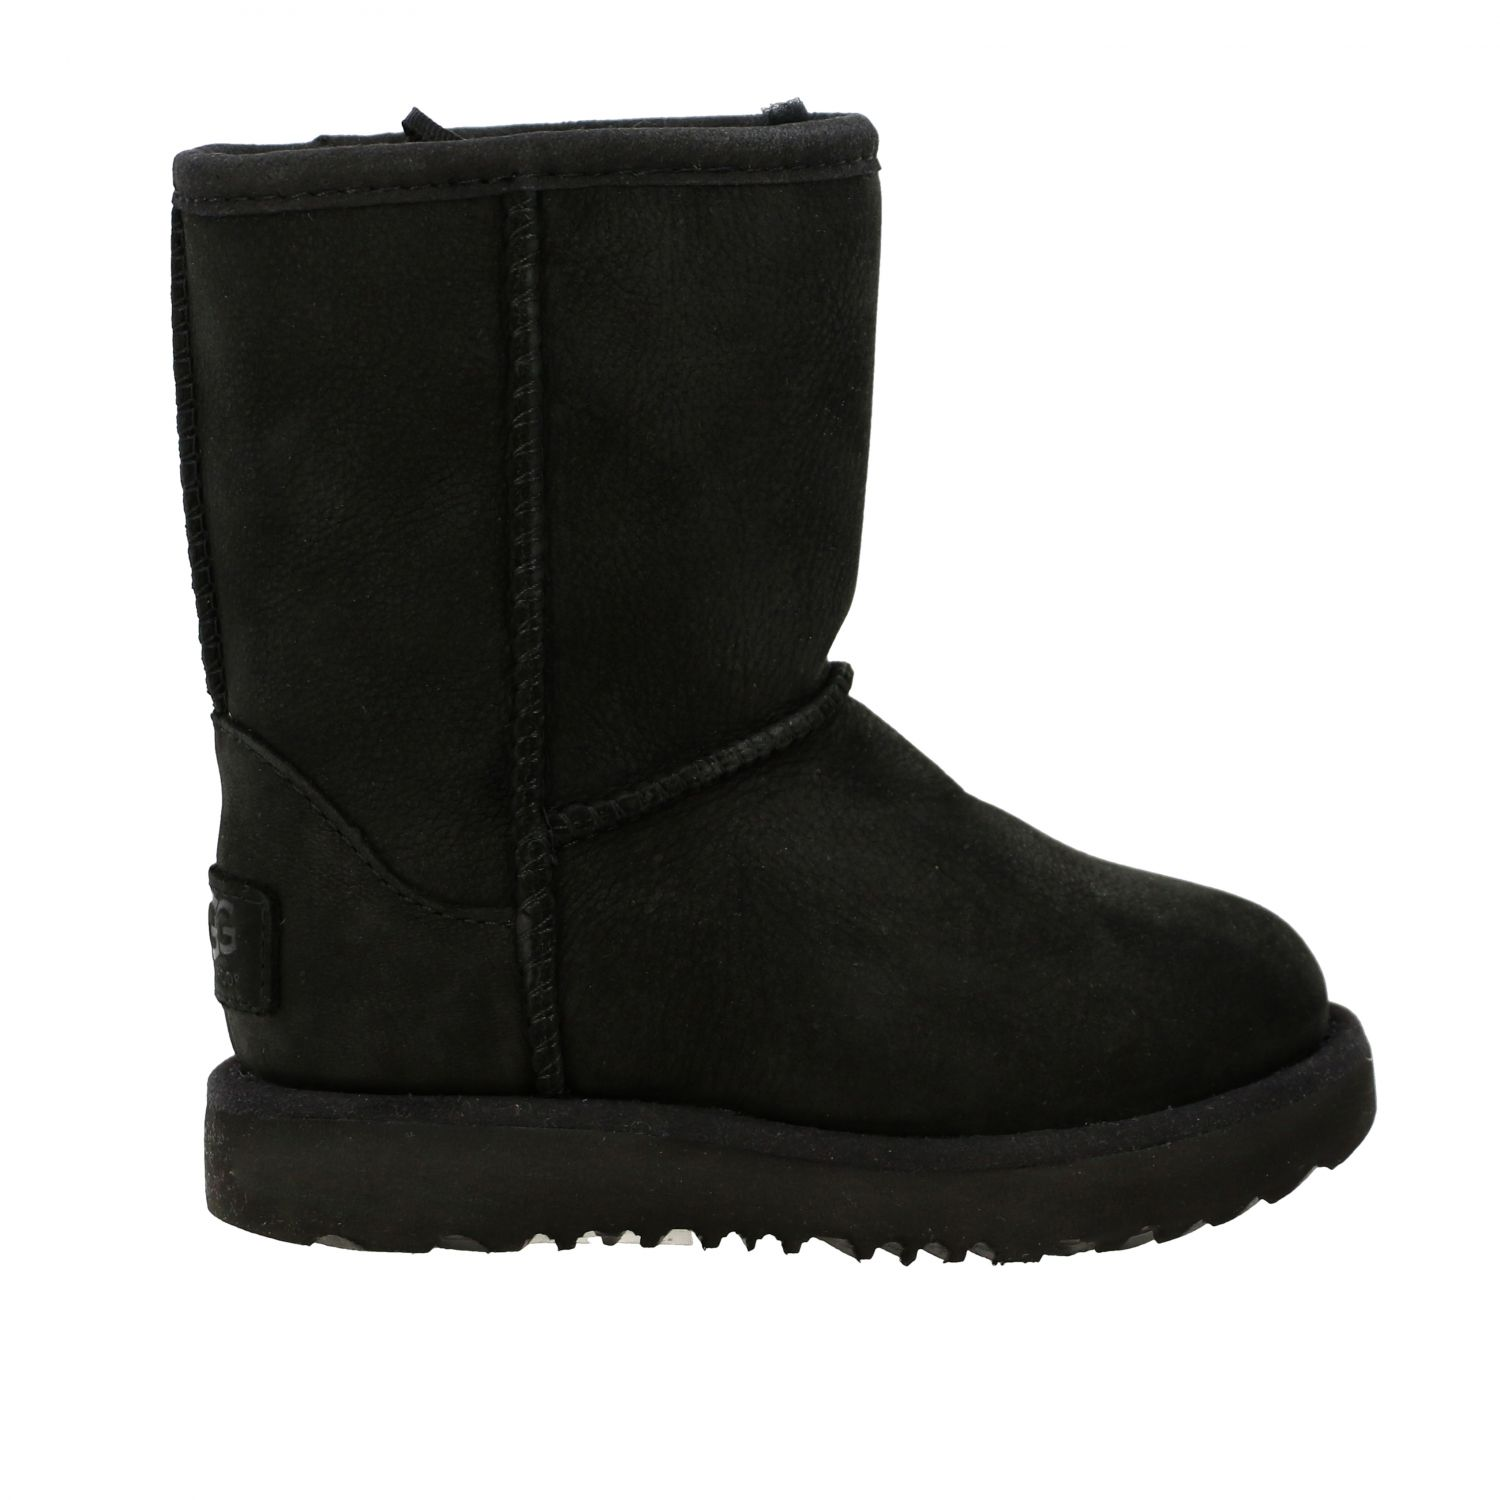 Shoes kids Ugg Australia black 1